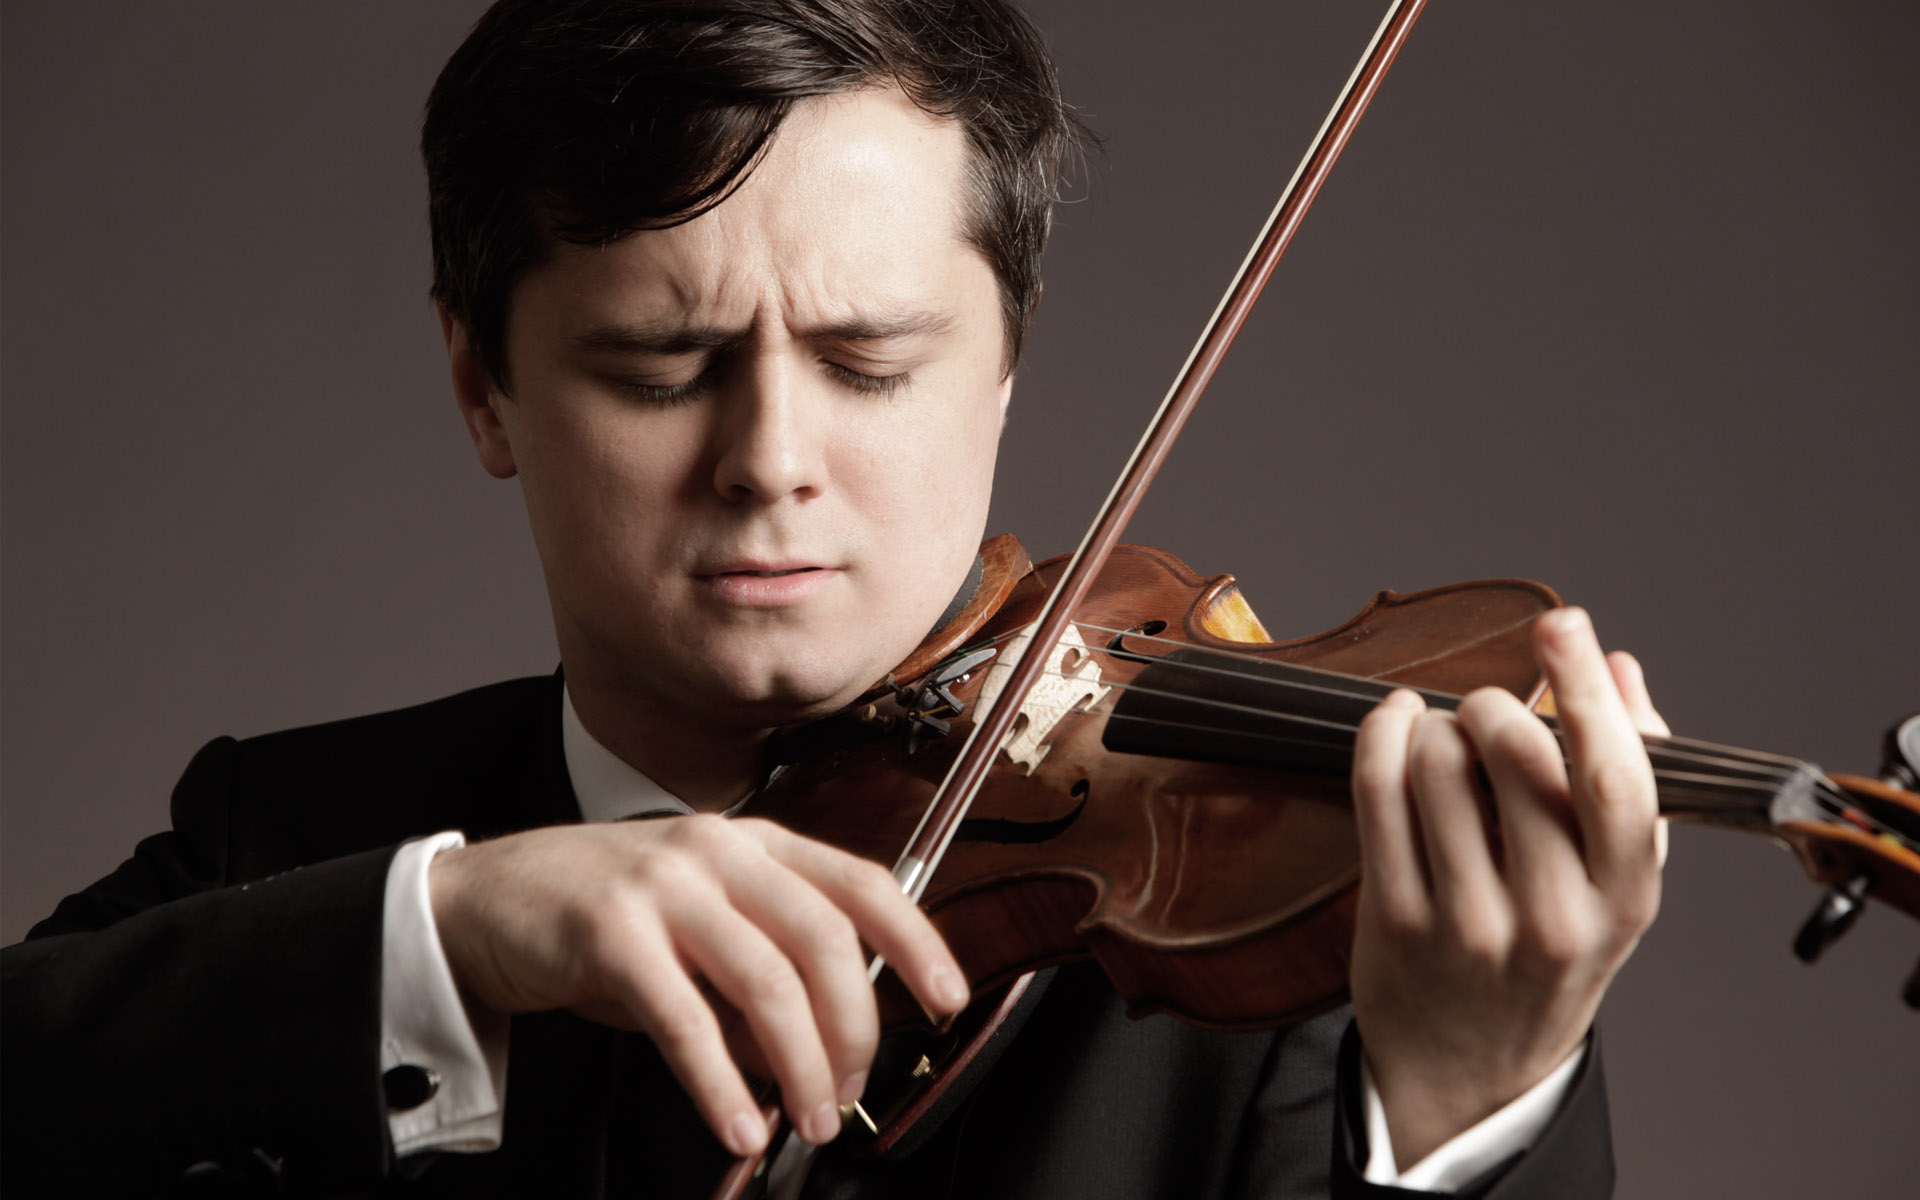 Aleksey Semenenko plays Sibelius' Violin Concerto with Seattle Symphony this weekend (Courtesy of the artist)